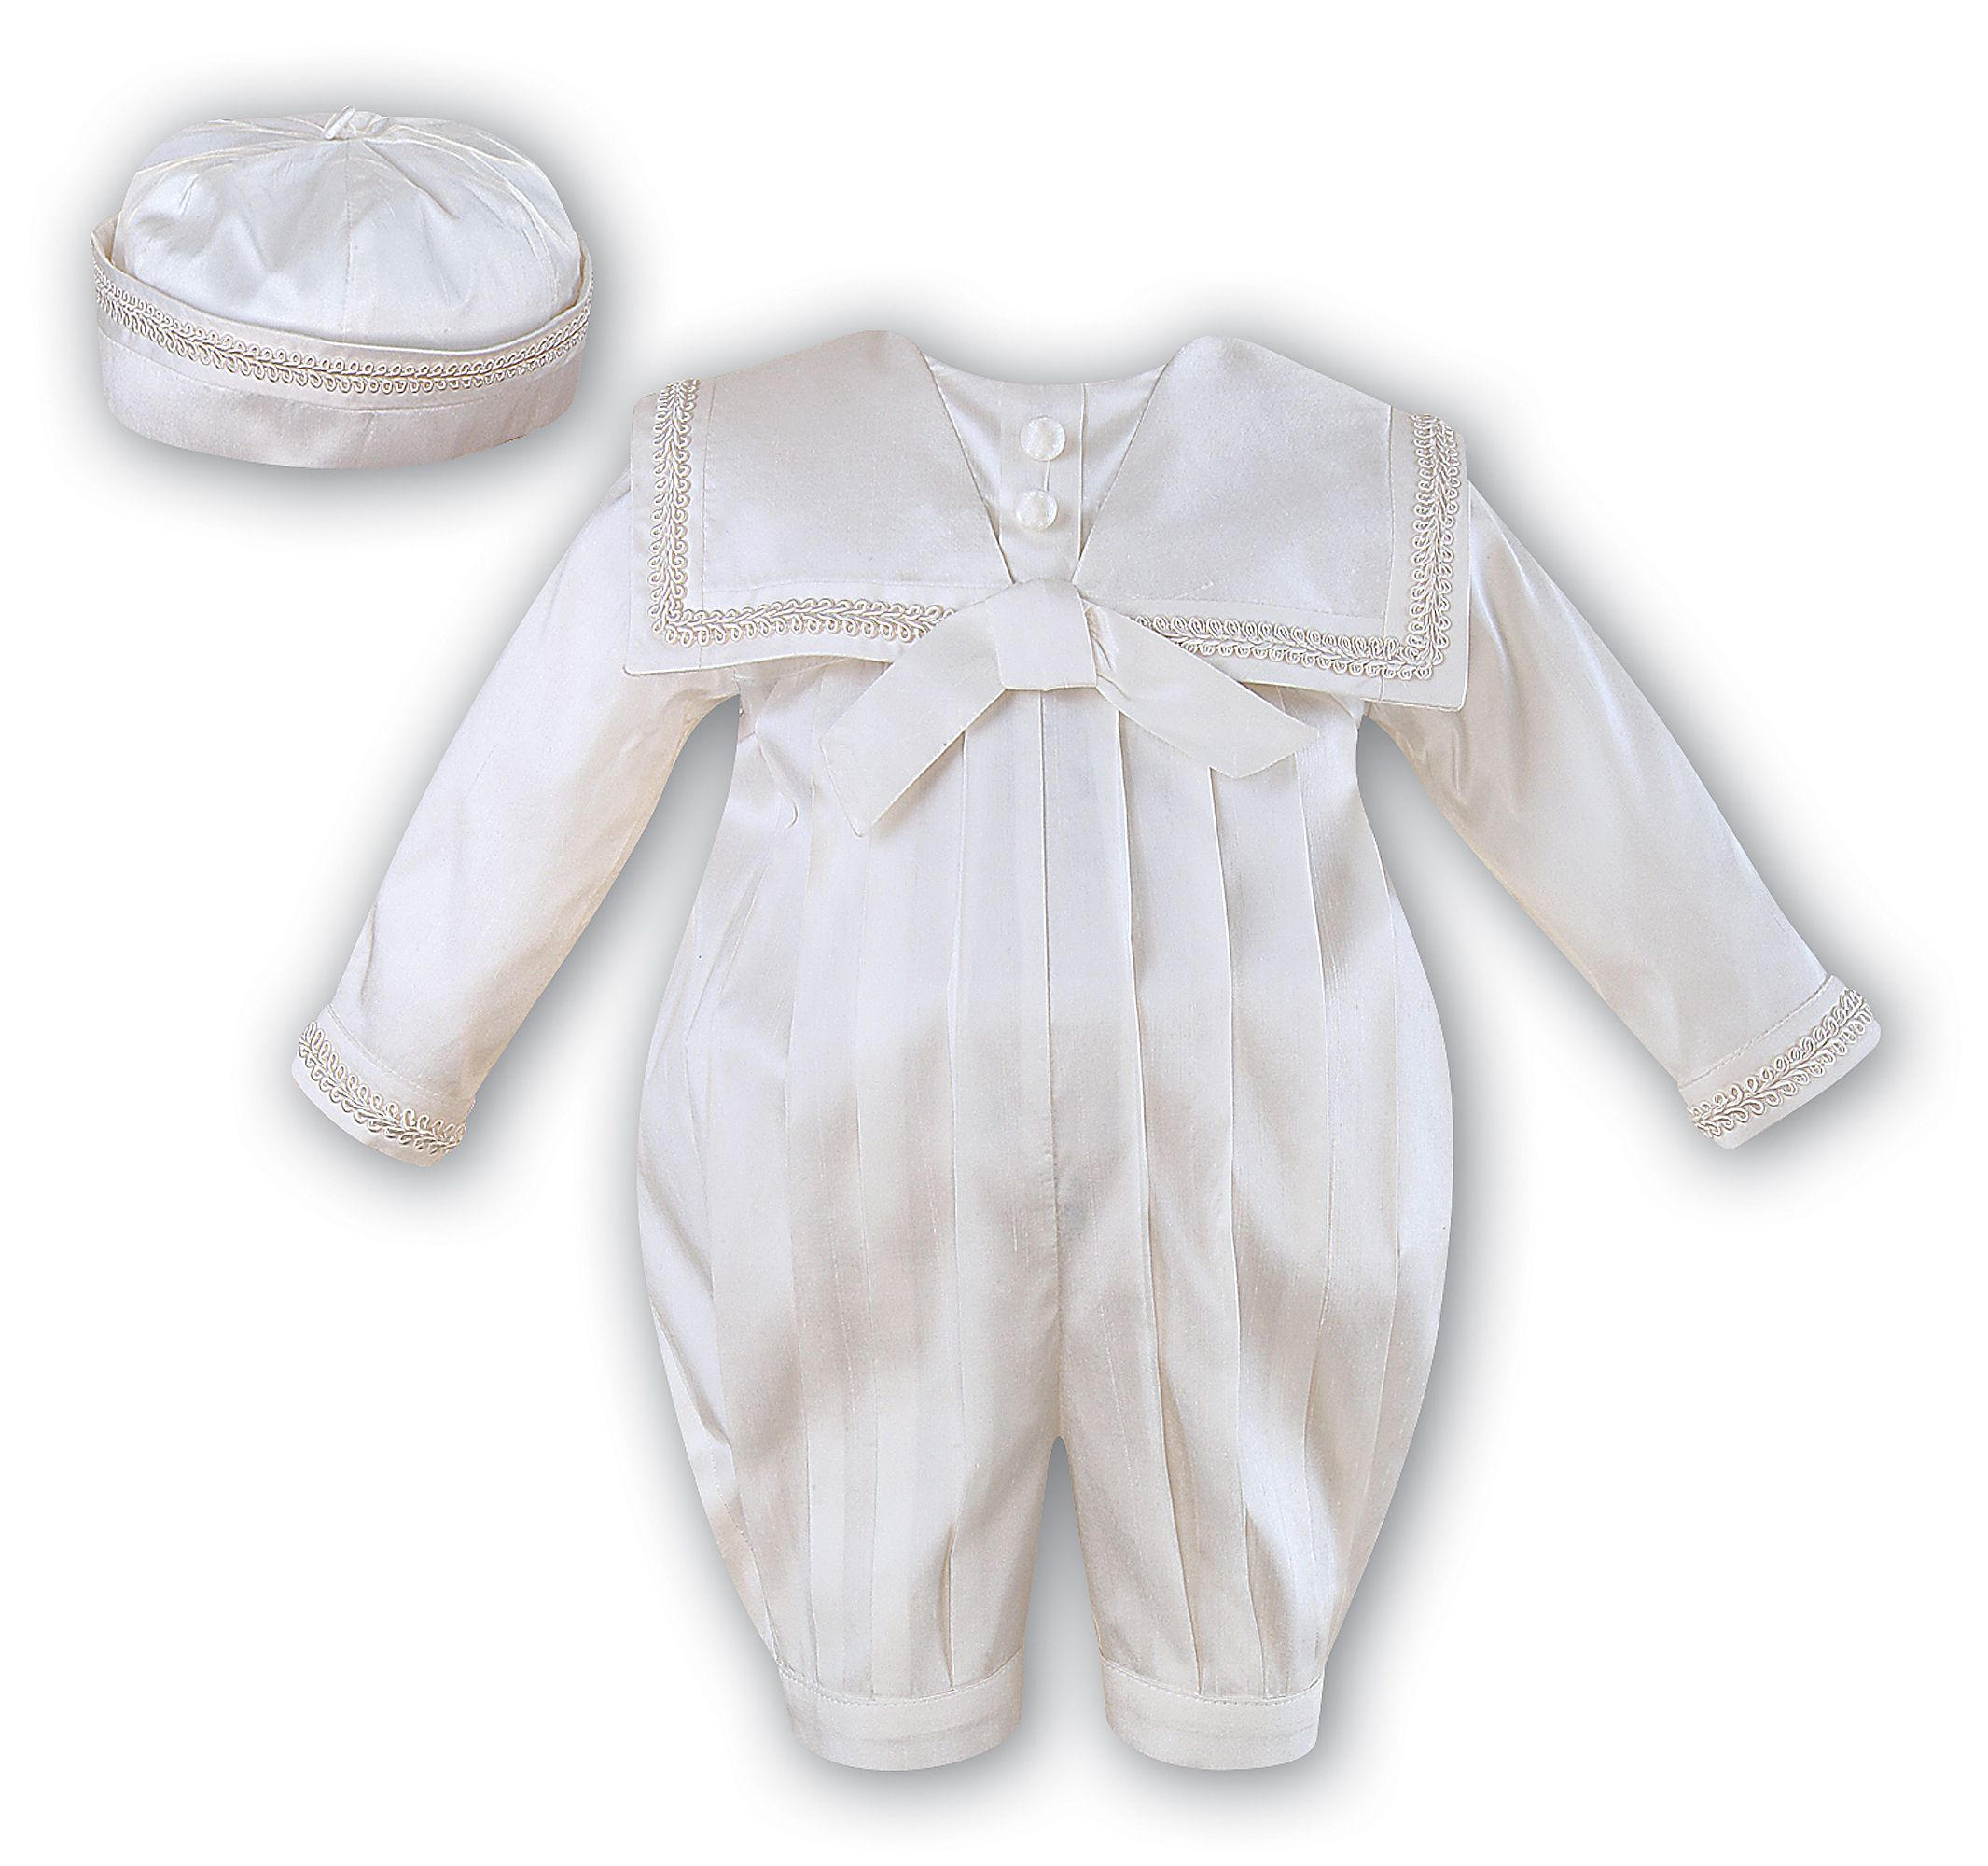 Babys silk ivory romper with hat